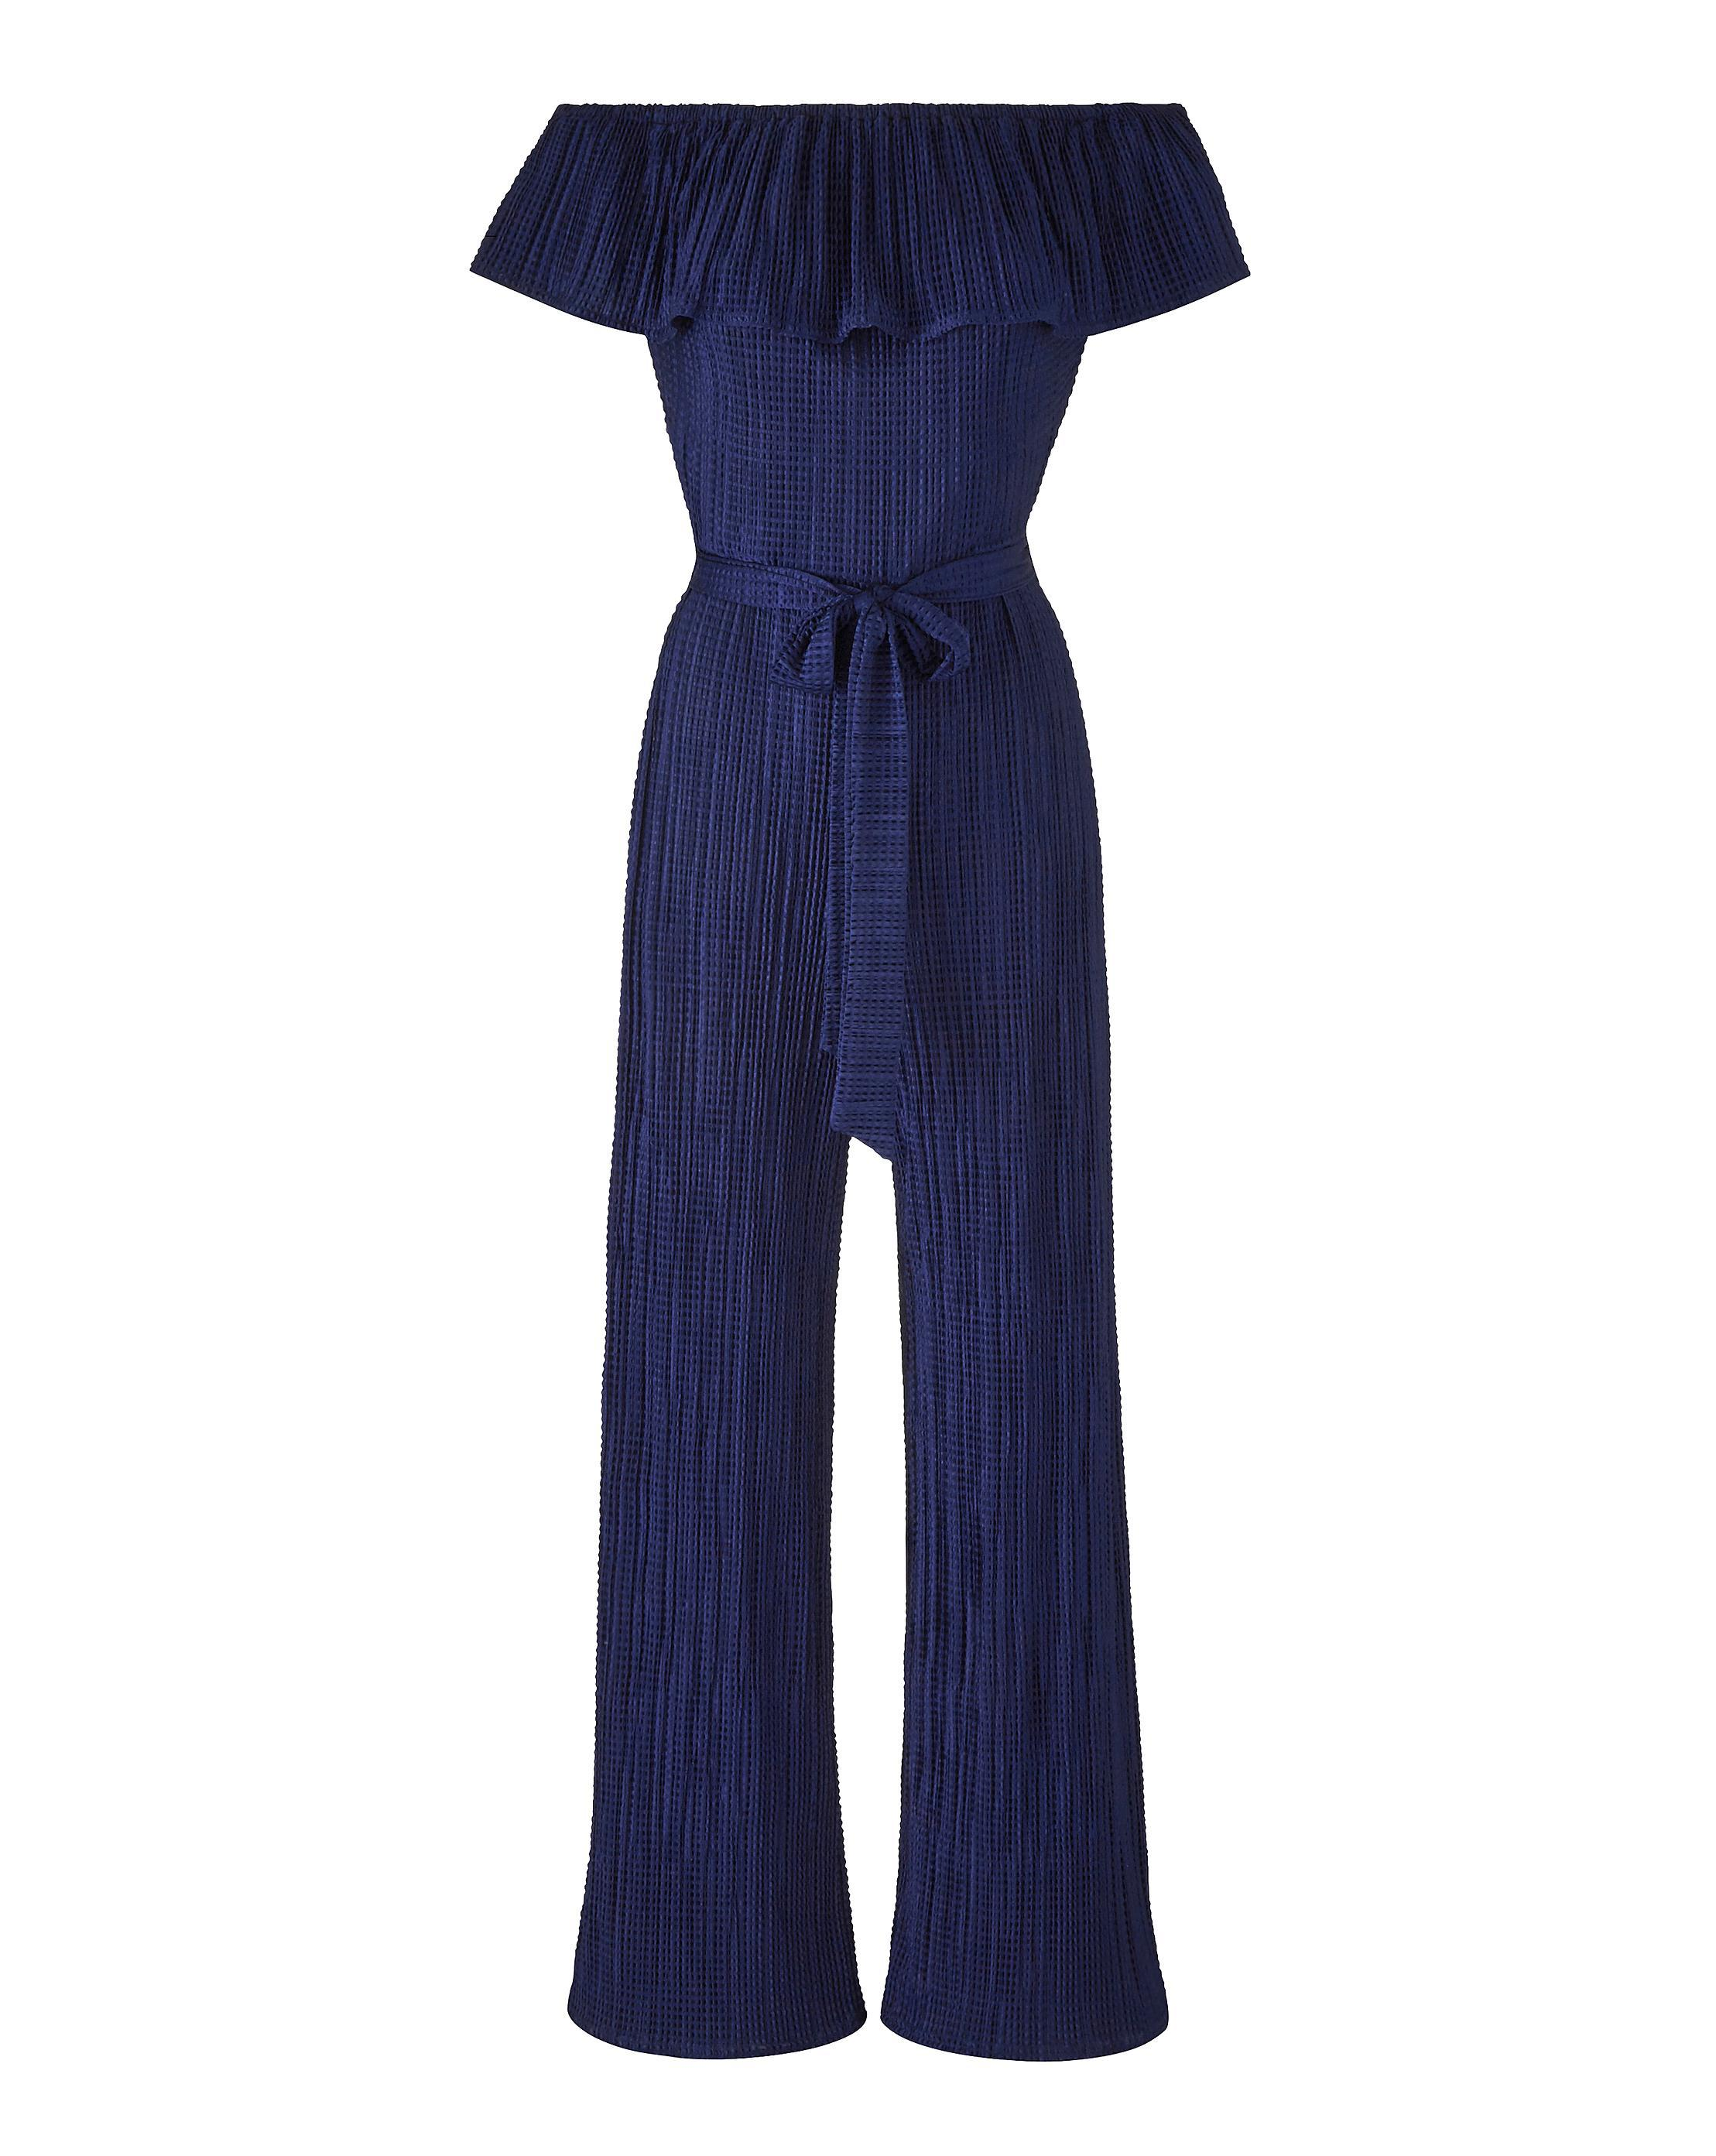 a5d45d5363c Lyst - Simply Be Joanna Hope Plisse Jumpsuit in Blue